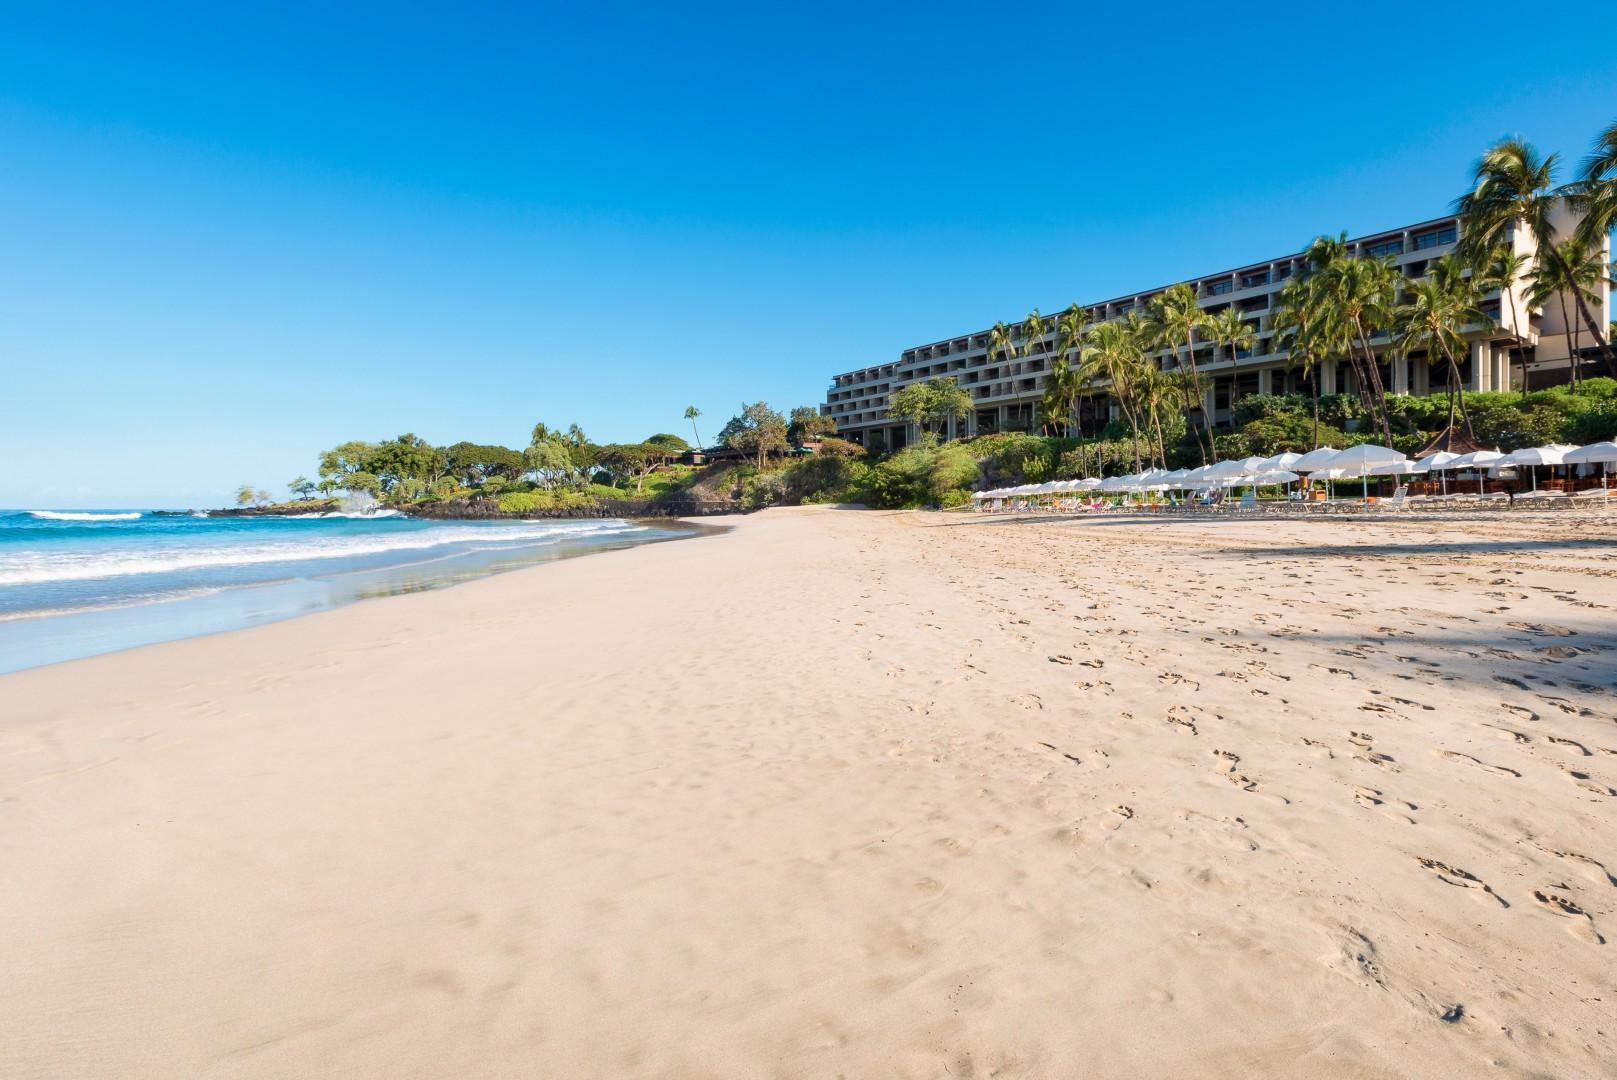 The famous Hapuna Prince Resort white sand beach. Five-minute drive from home.